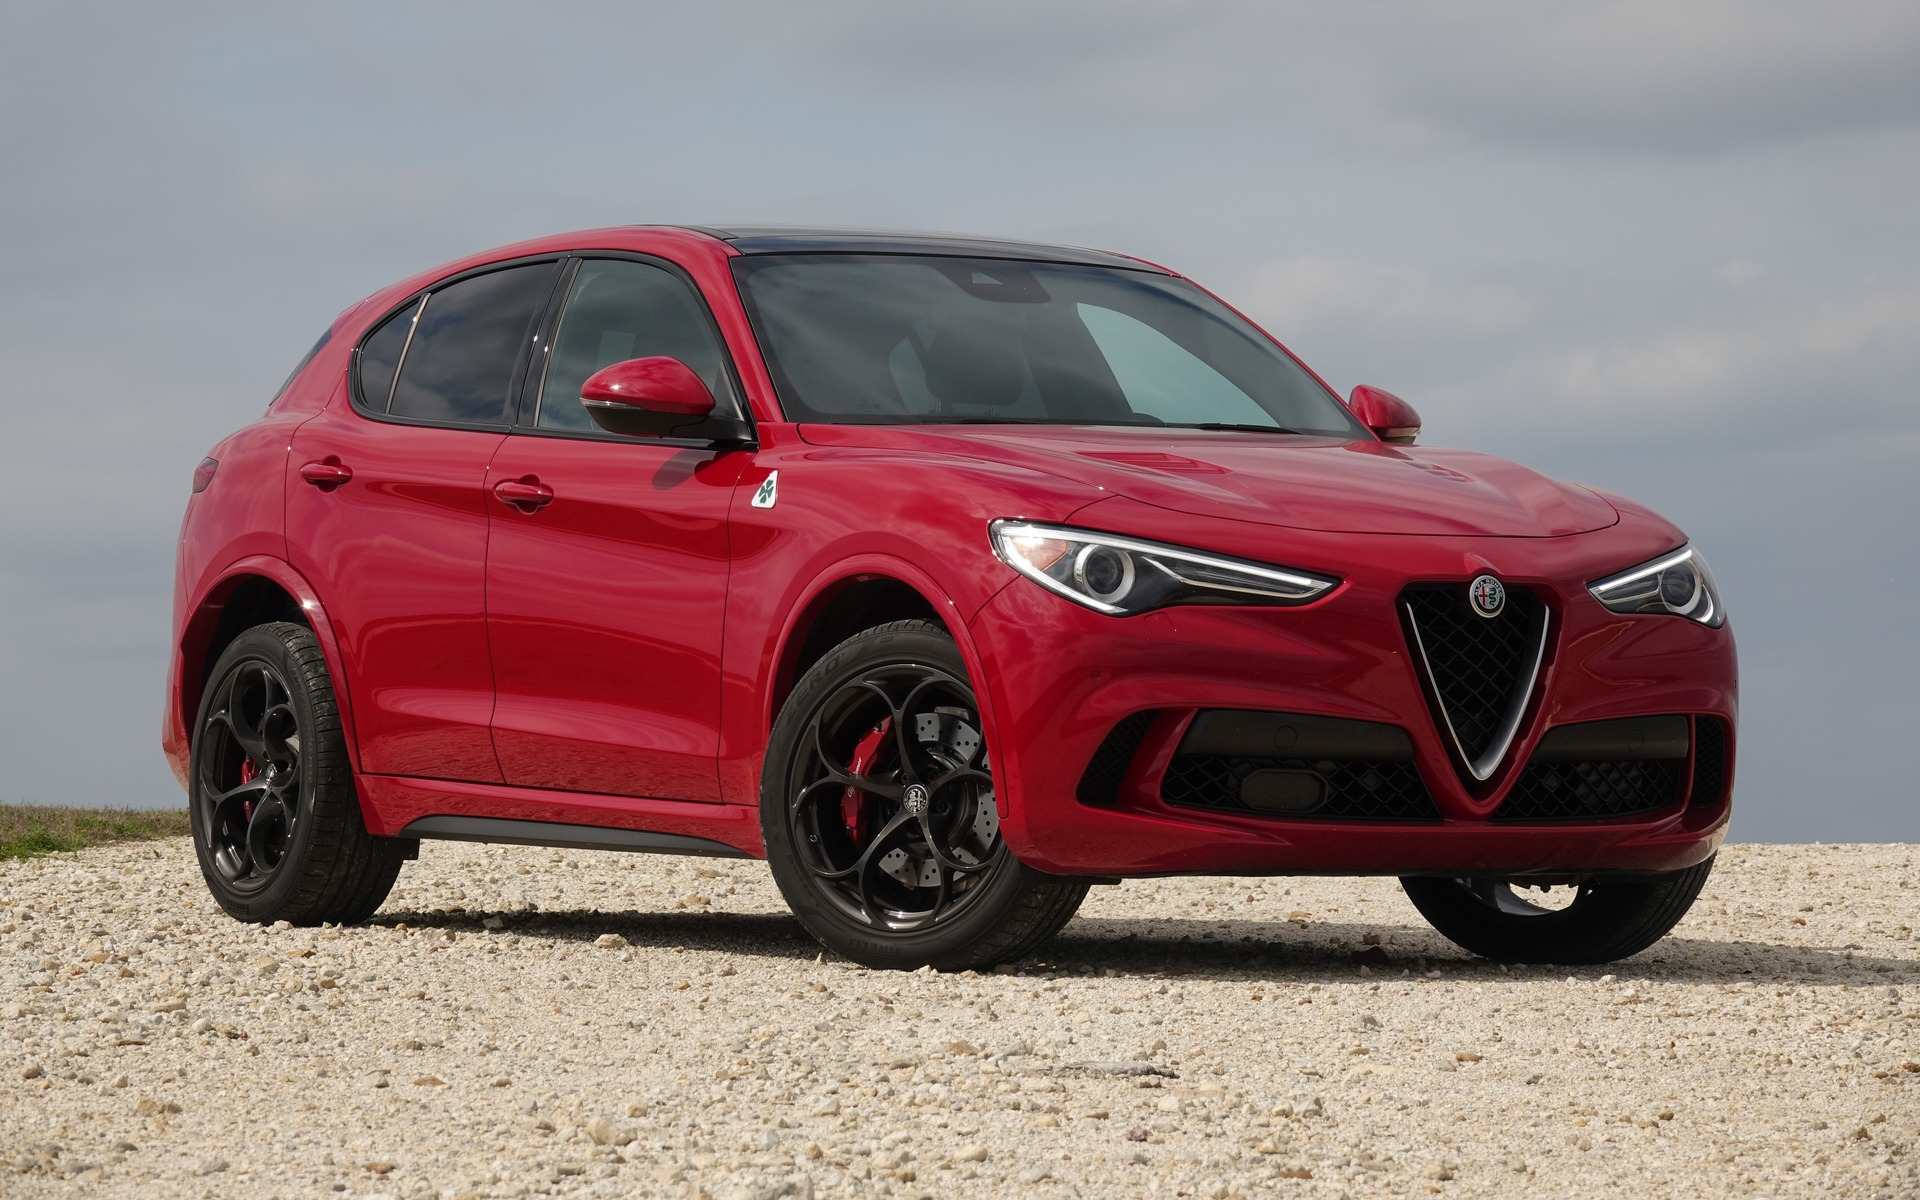 2018 Alfa Romeo Stelvio Quadrifoglio A Wild Beast In An Italian Suit The Car Guide